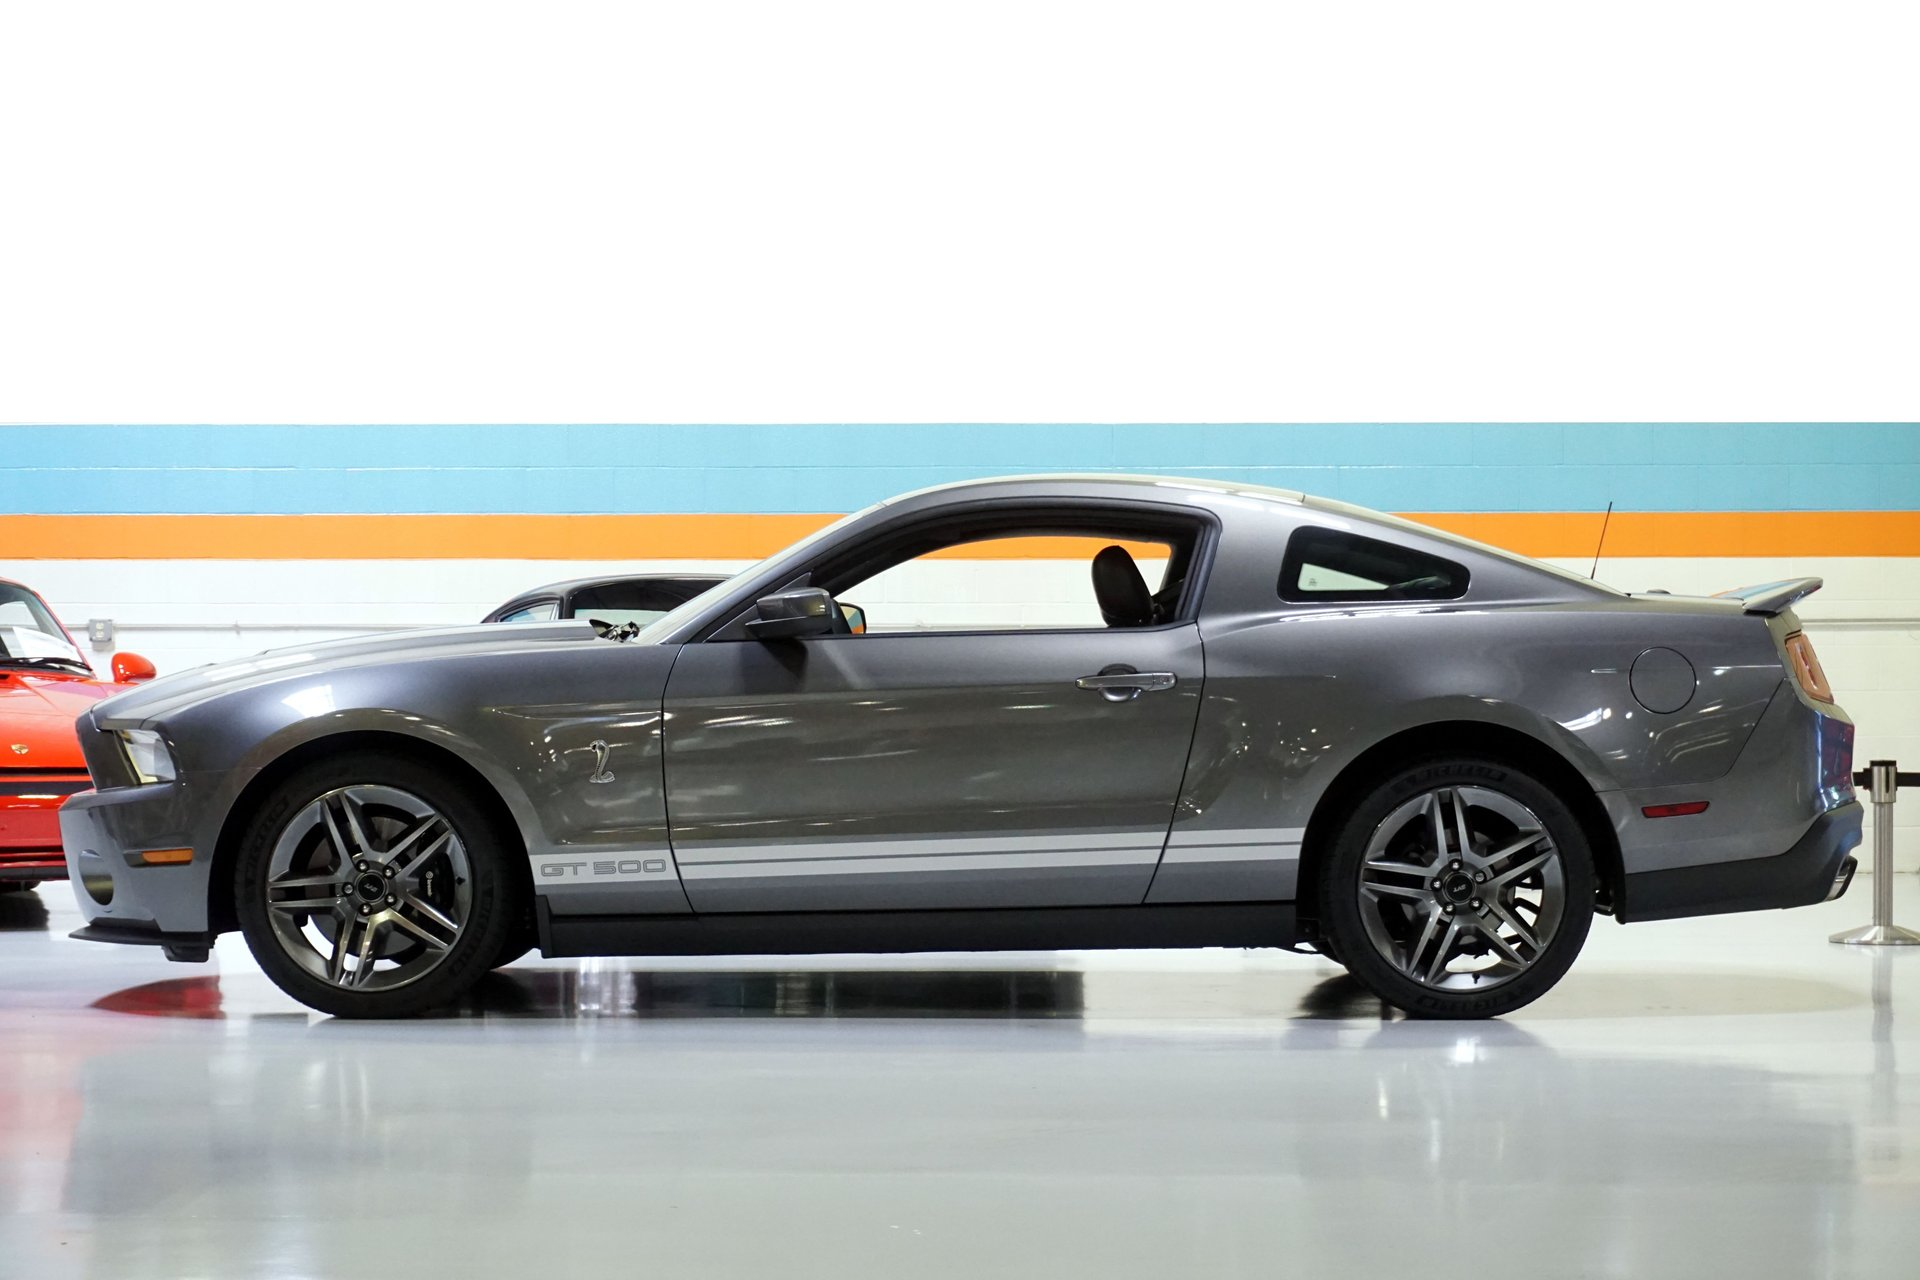 2010 Ford Mustang Shelby GT500 SVT